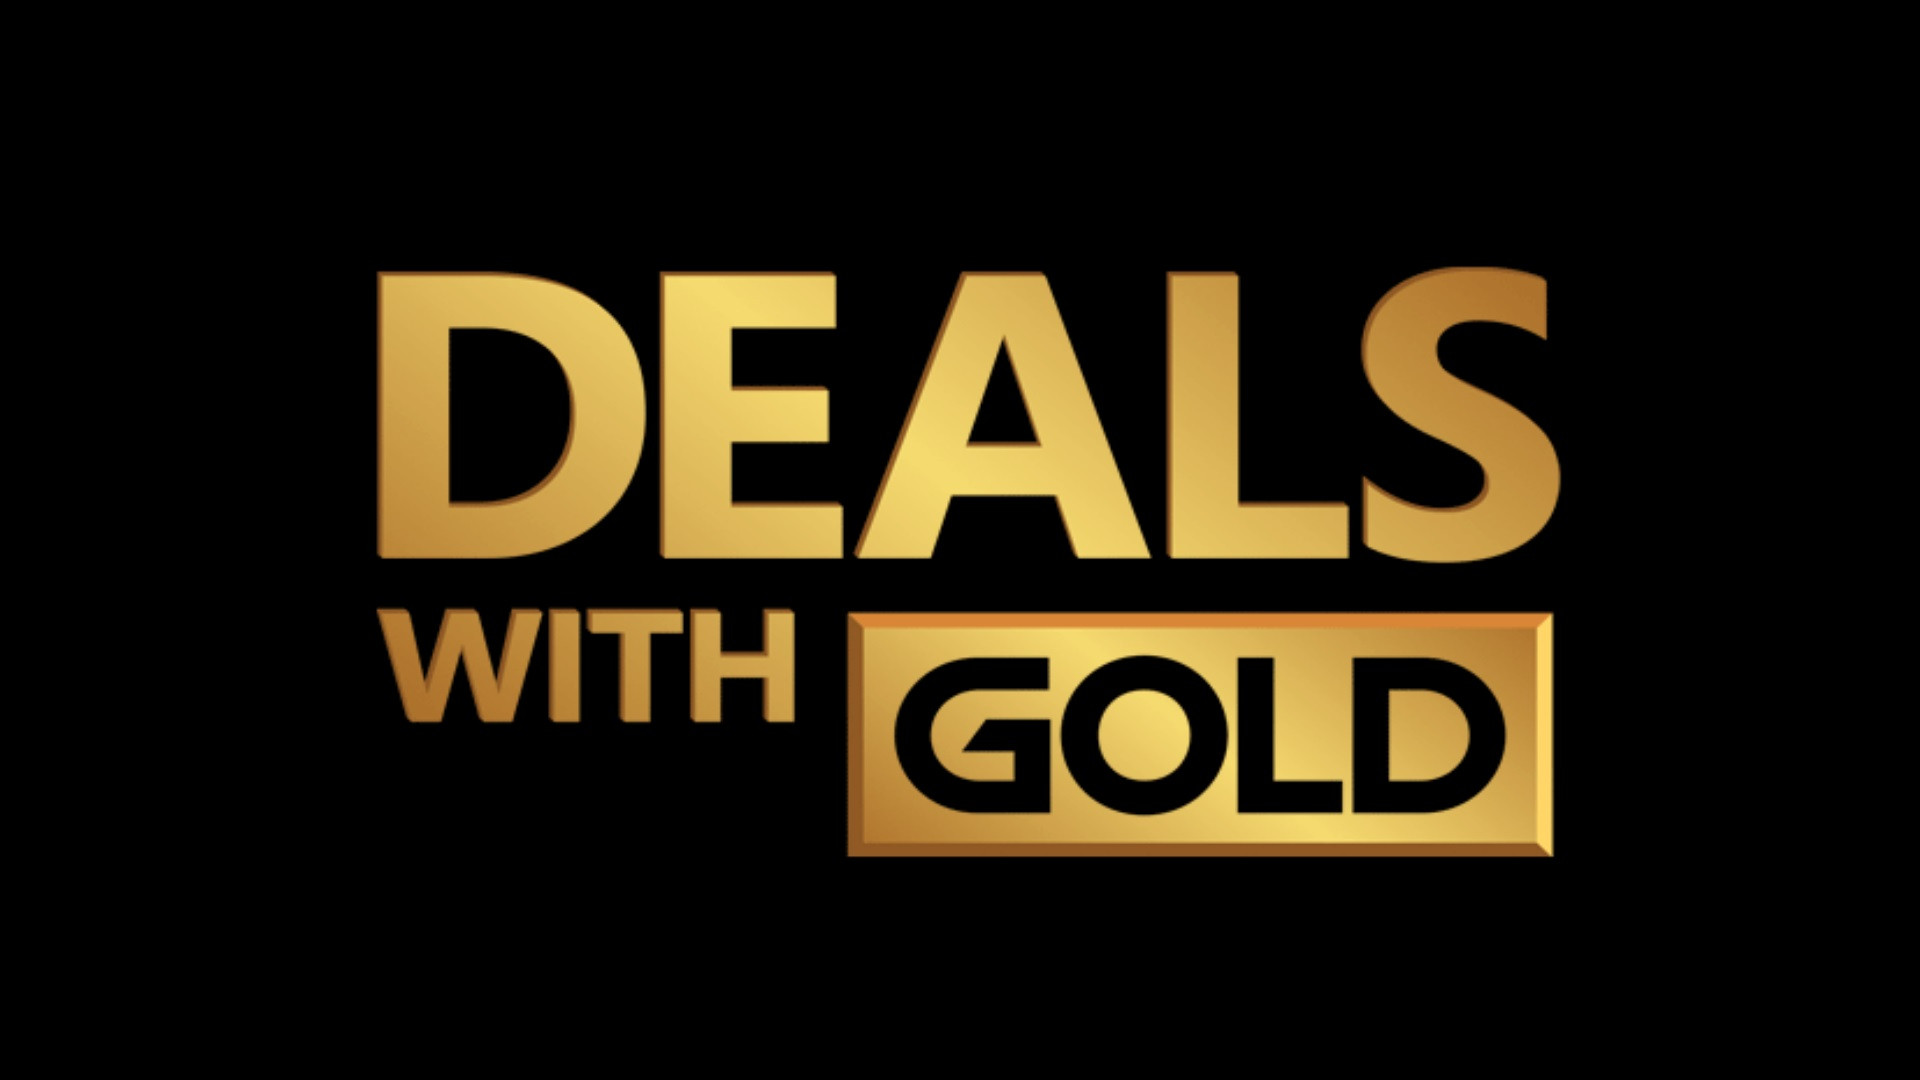 Deals with Gold semaine 11